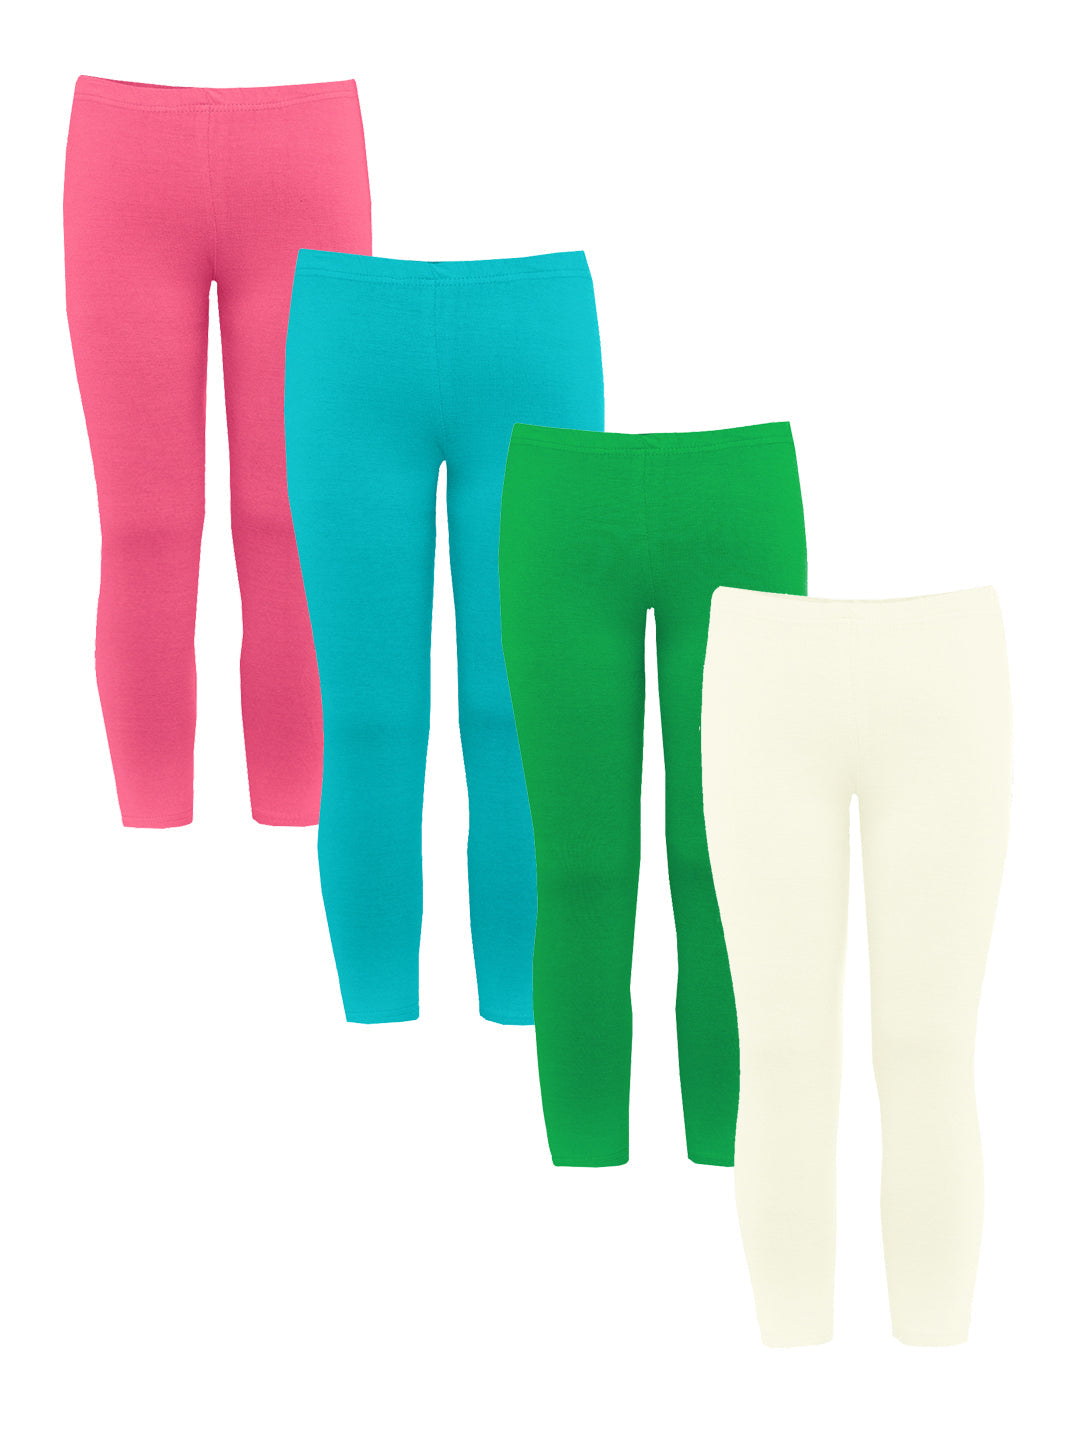 Naughty Ninos Girls Pack of 4 Assorted Ankle-Length Leggings